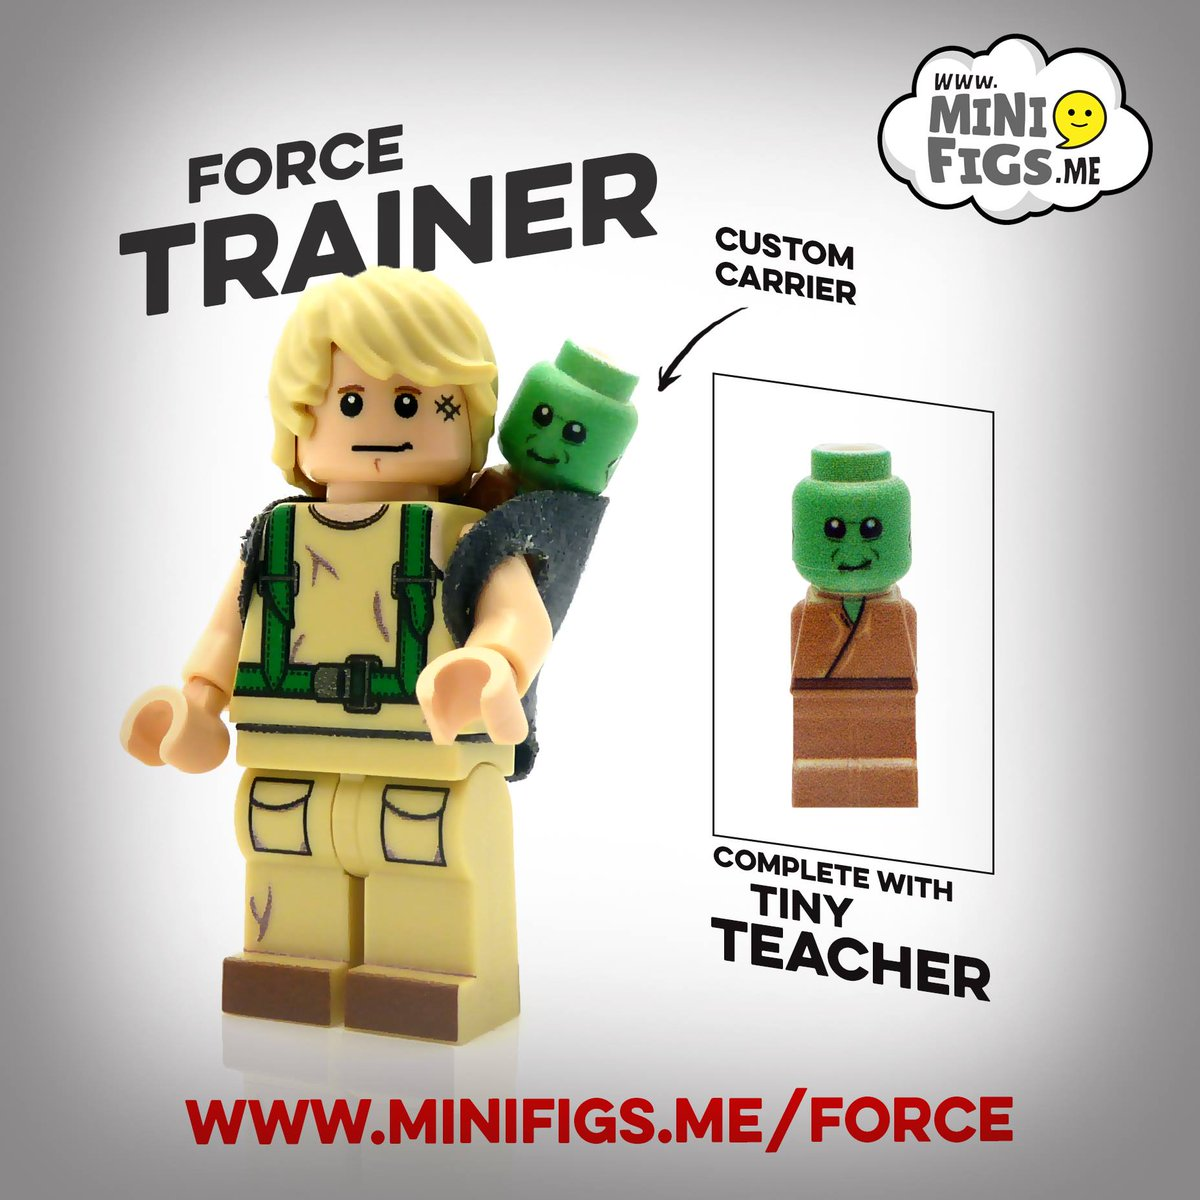 "Minifigs.me on Twitter: ""Congrats to @Chetleycheese, who's won our ..."